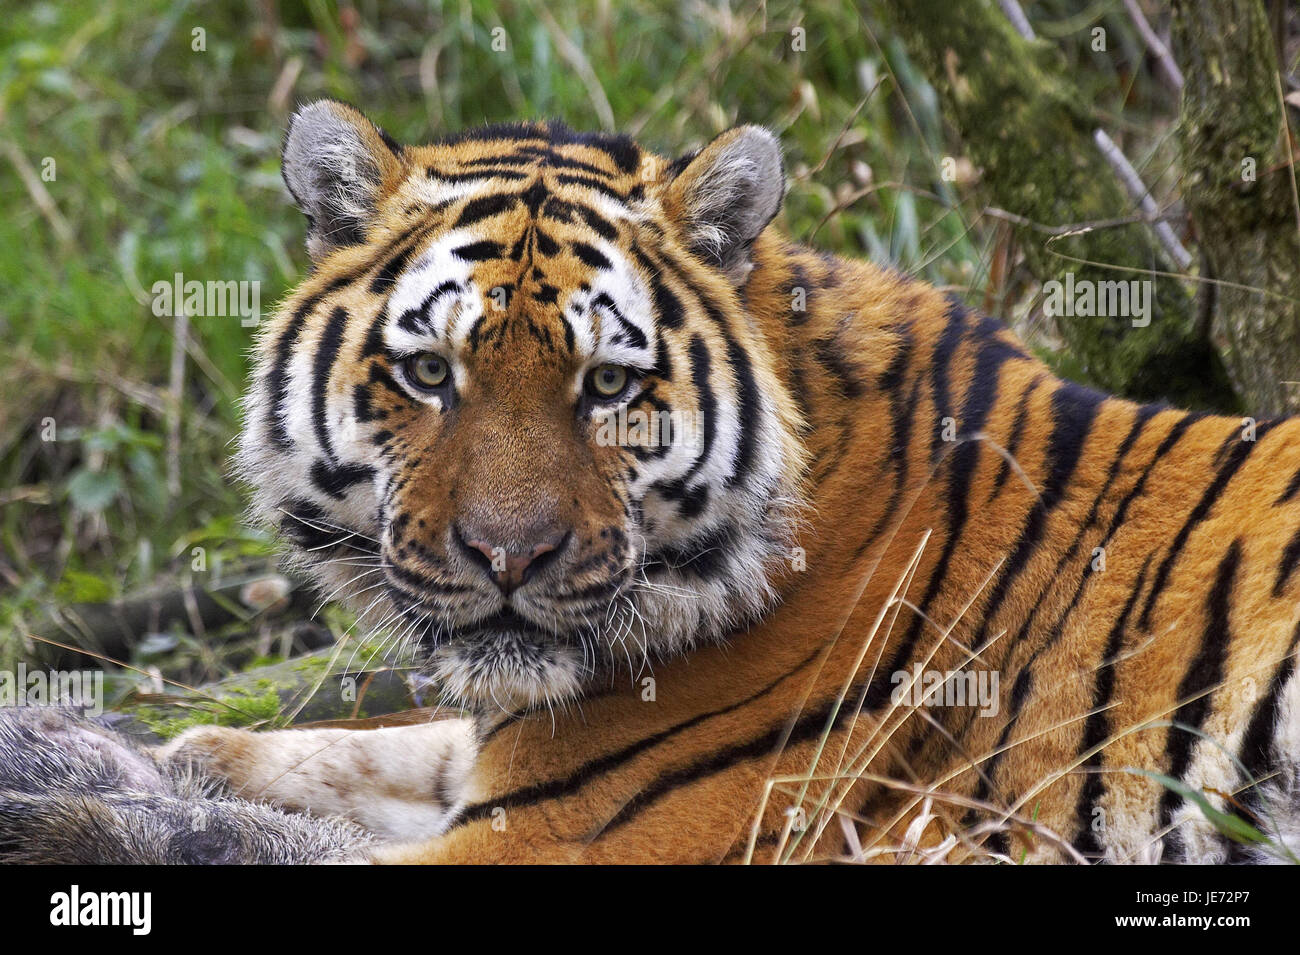 Siberian tigers, Panthera tigris altaica, also Amur tiger, adult animal, wild boar, prey, - Stock Image